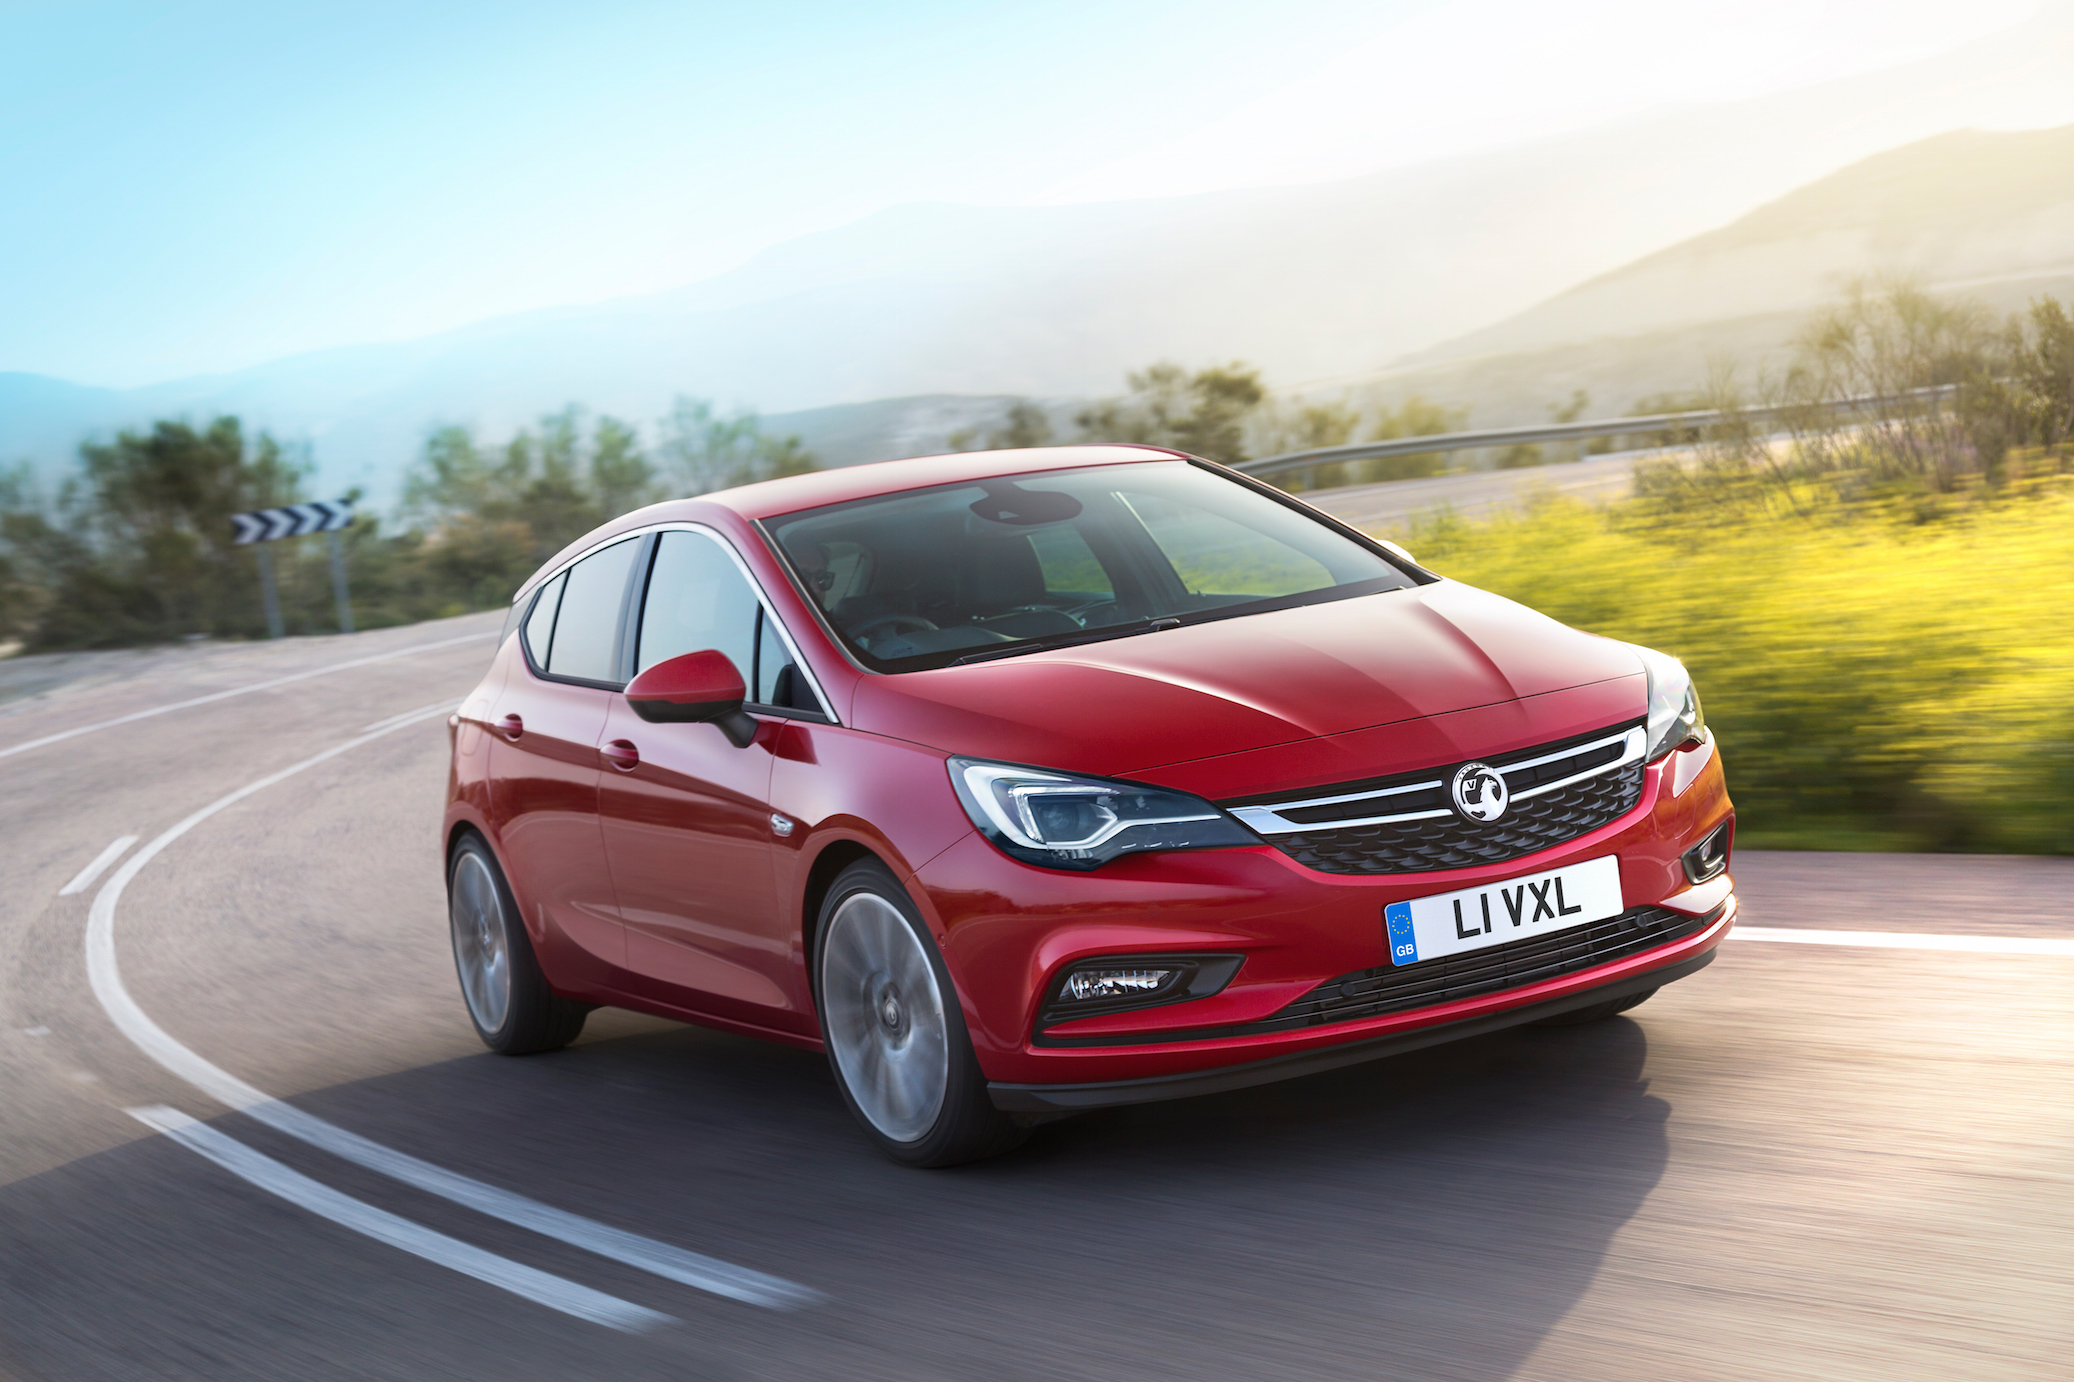 all-new Astra